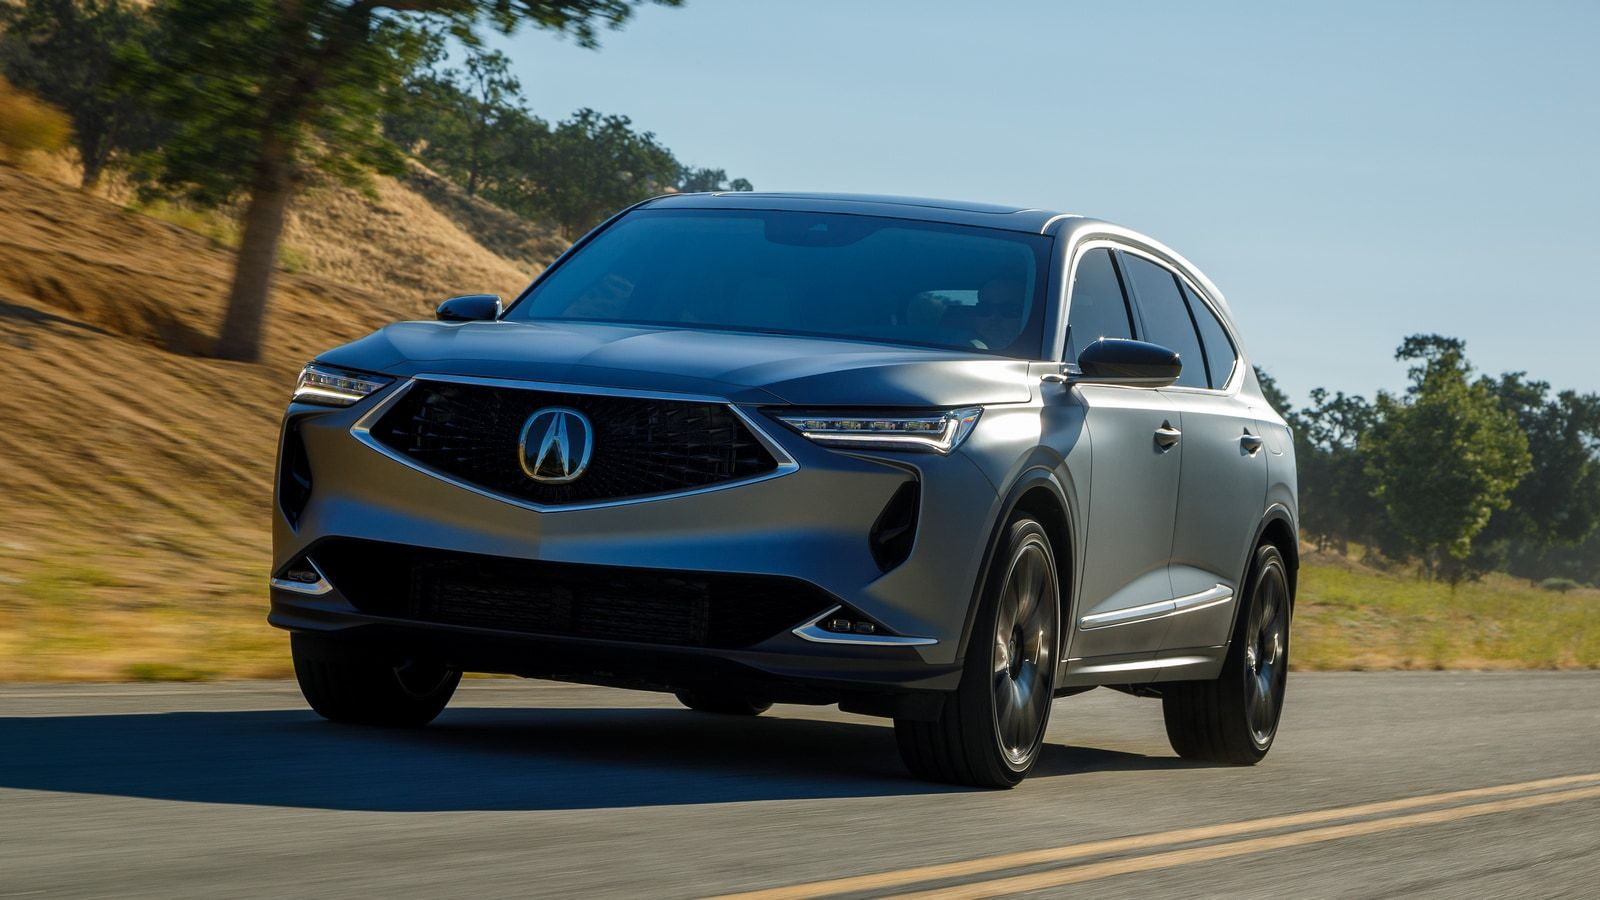 Why The New Fourth-Gen Acura MDX Needs To Be Great | HotCars